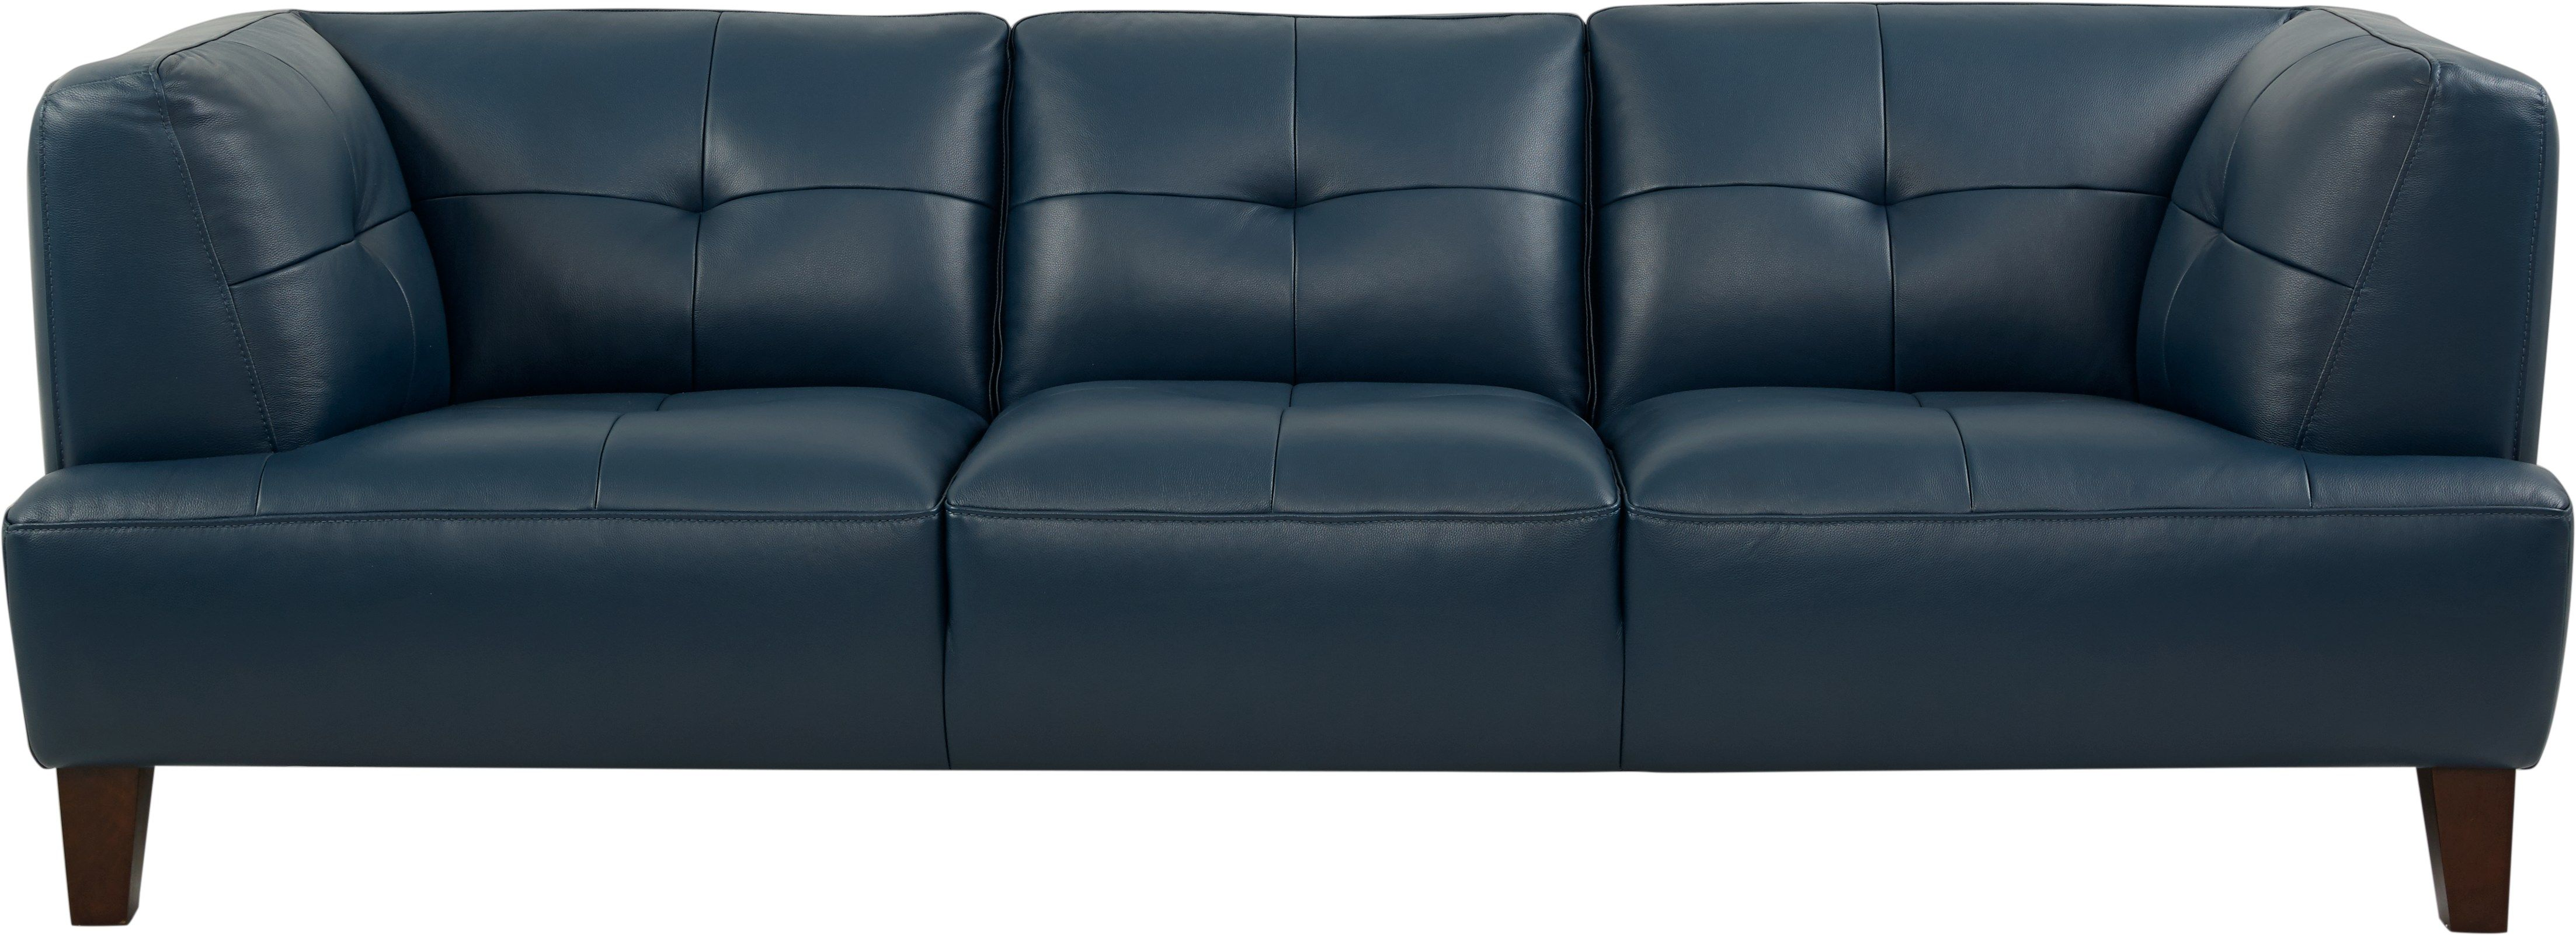 Enjoyable Villa Capri Blue Leather Sofa Rtg Uphostery In 2019 Blue Gmtry Best Dining Table And Chair Ideas Images Gmtryco